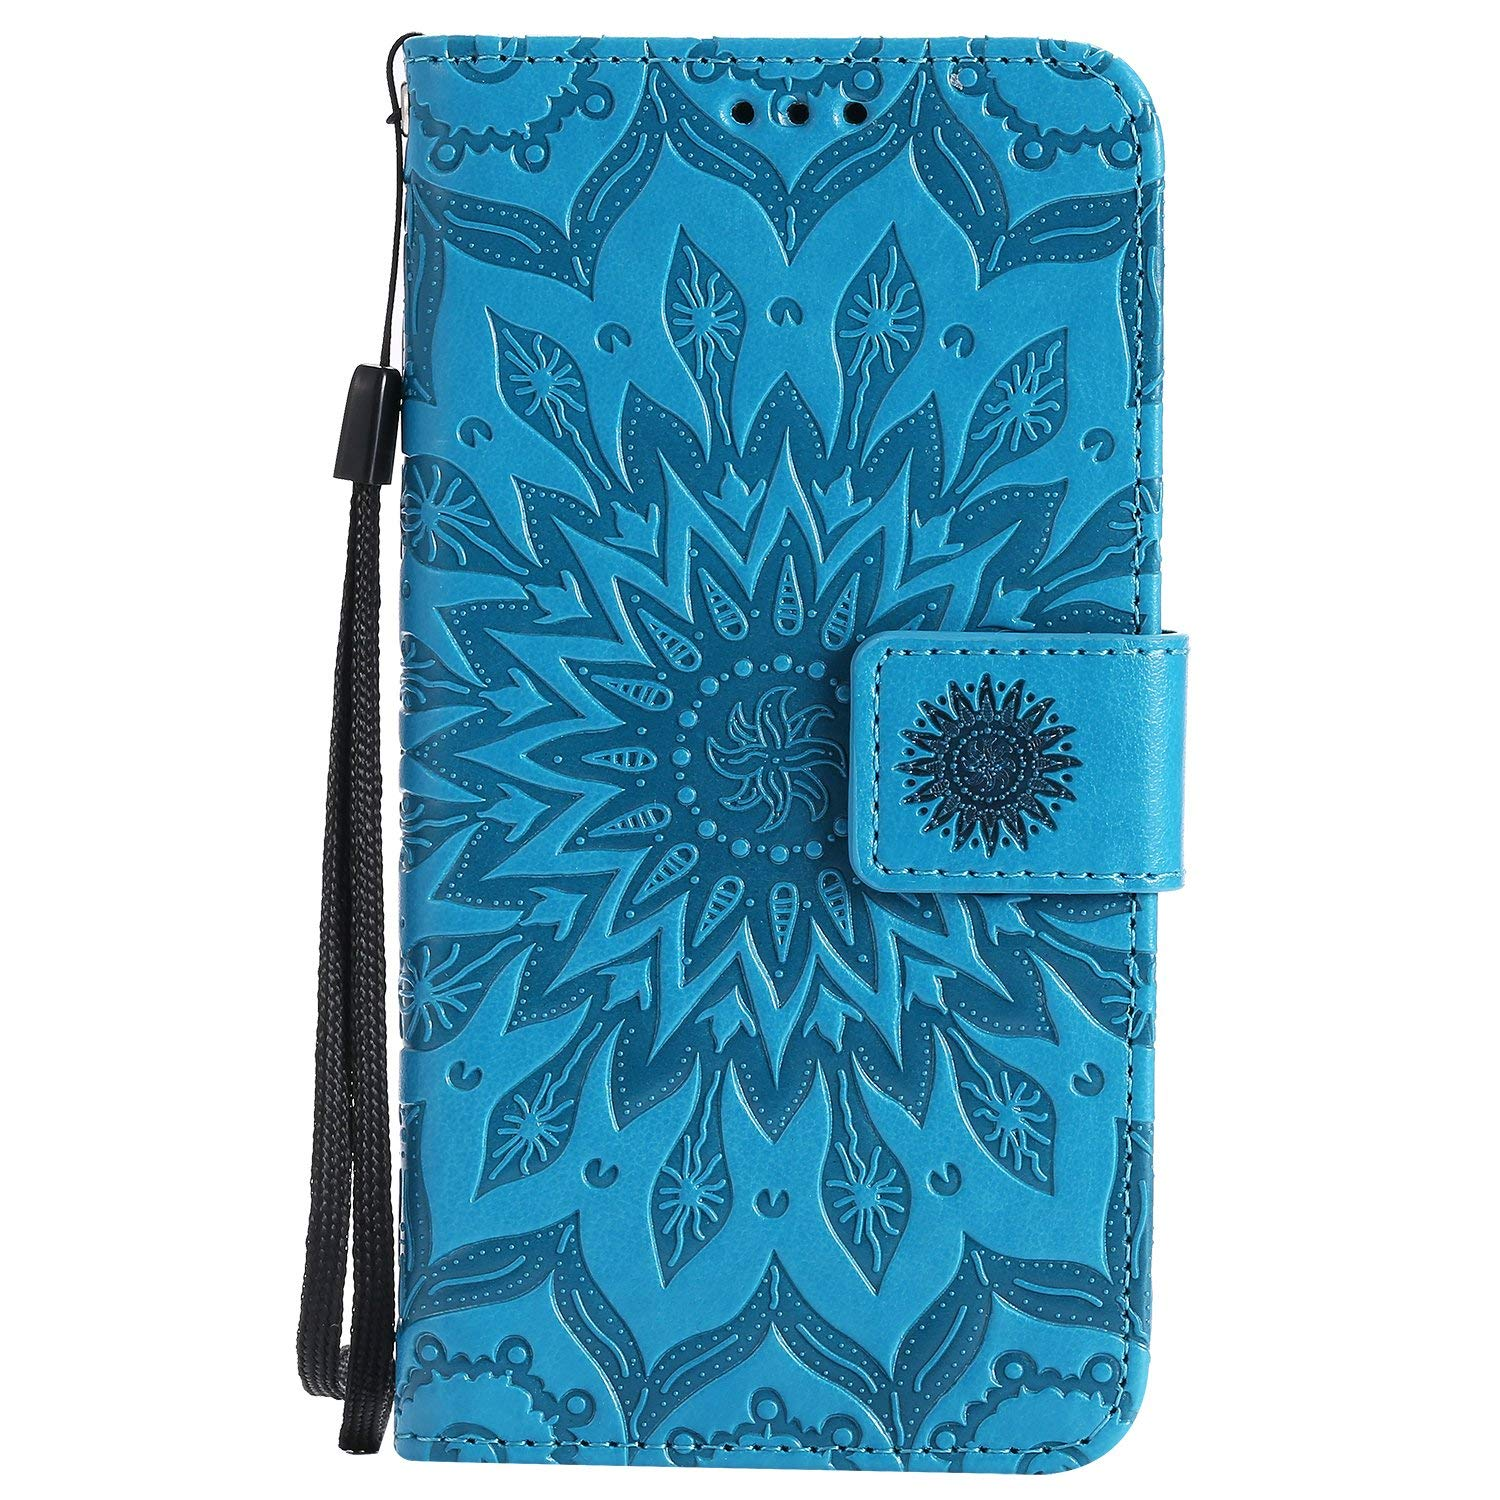 Galaxy J7 V Case J7 Perx /J7 Sky Pro Cover ZVKVAMT Luxury Natural Silk Pattern PU Leather Wallet Flip Protective With Credit Card Slots Stand Magnetic Wristlet Strap for Samsung J7 2017 (FL-BLUE)